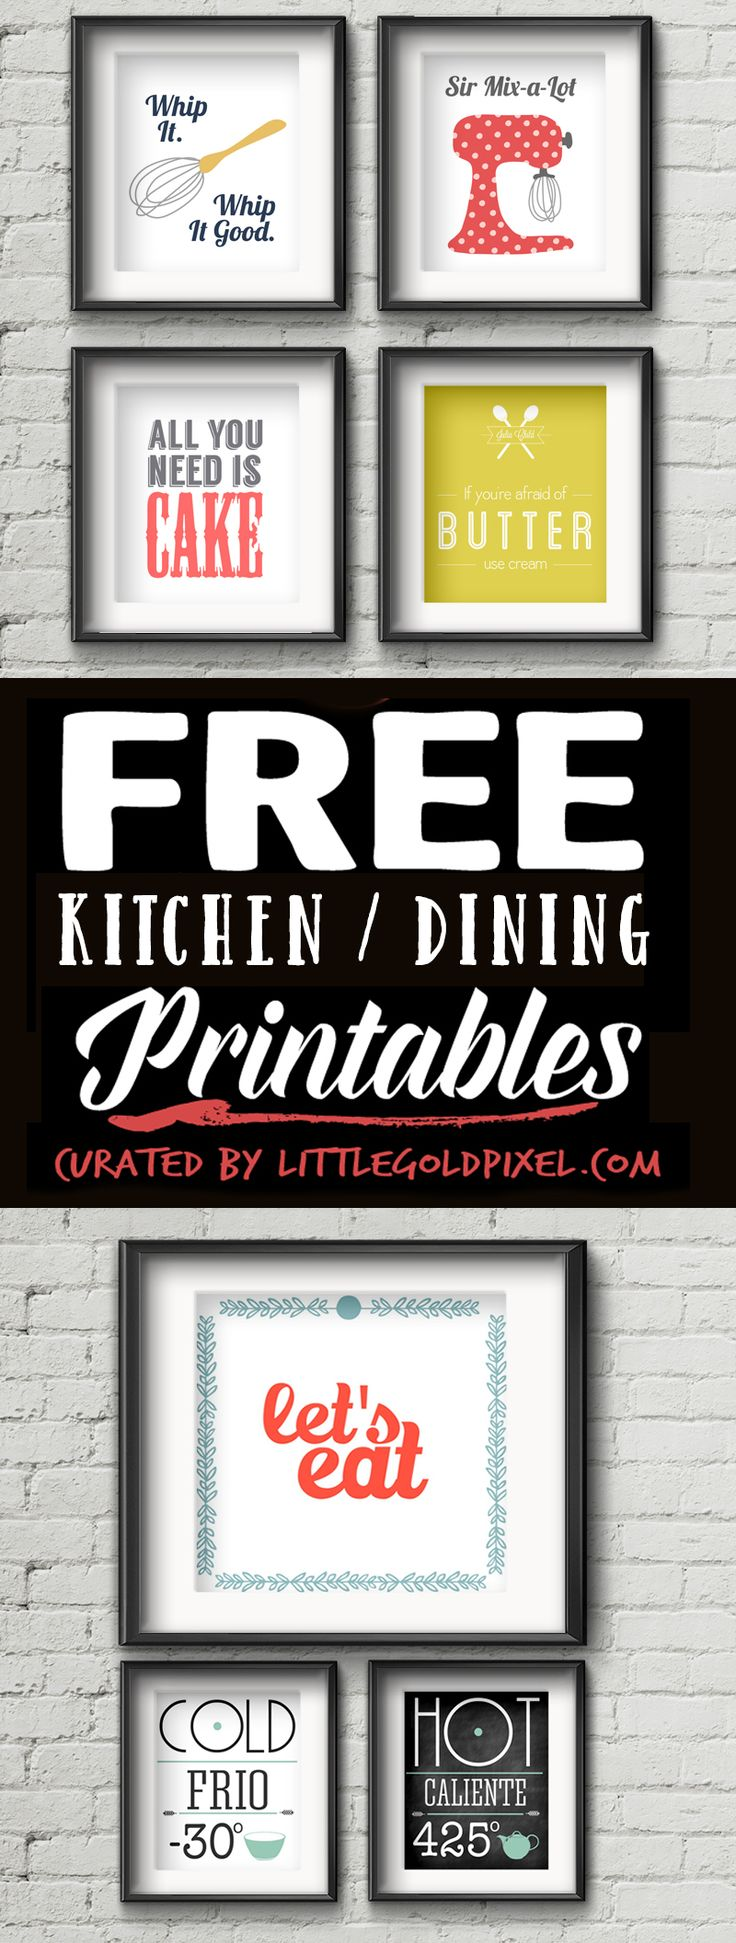 Darling prints! Perk up your kitchen! #LGLimitlessDesign #Contest #kitchen art #inexpensive kitchen #kitchen ideas